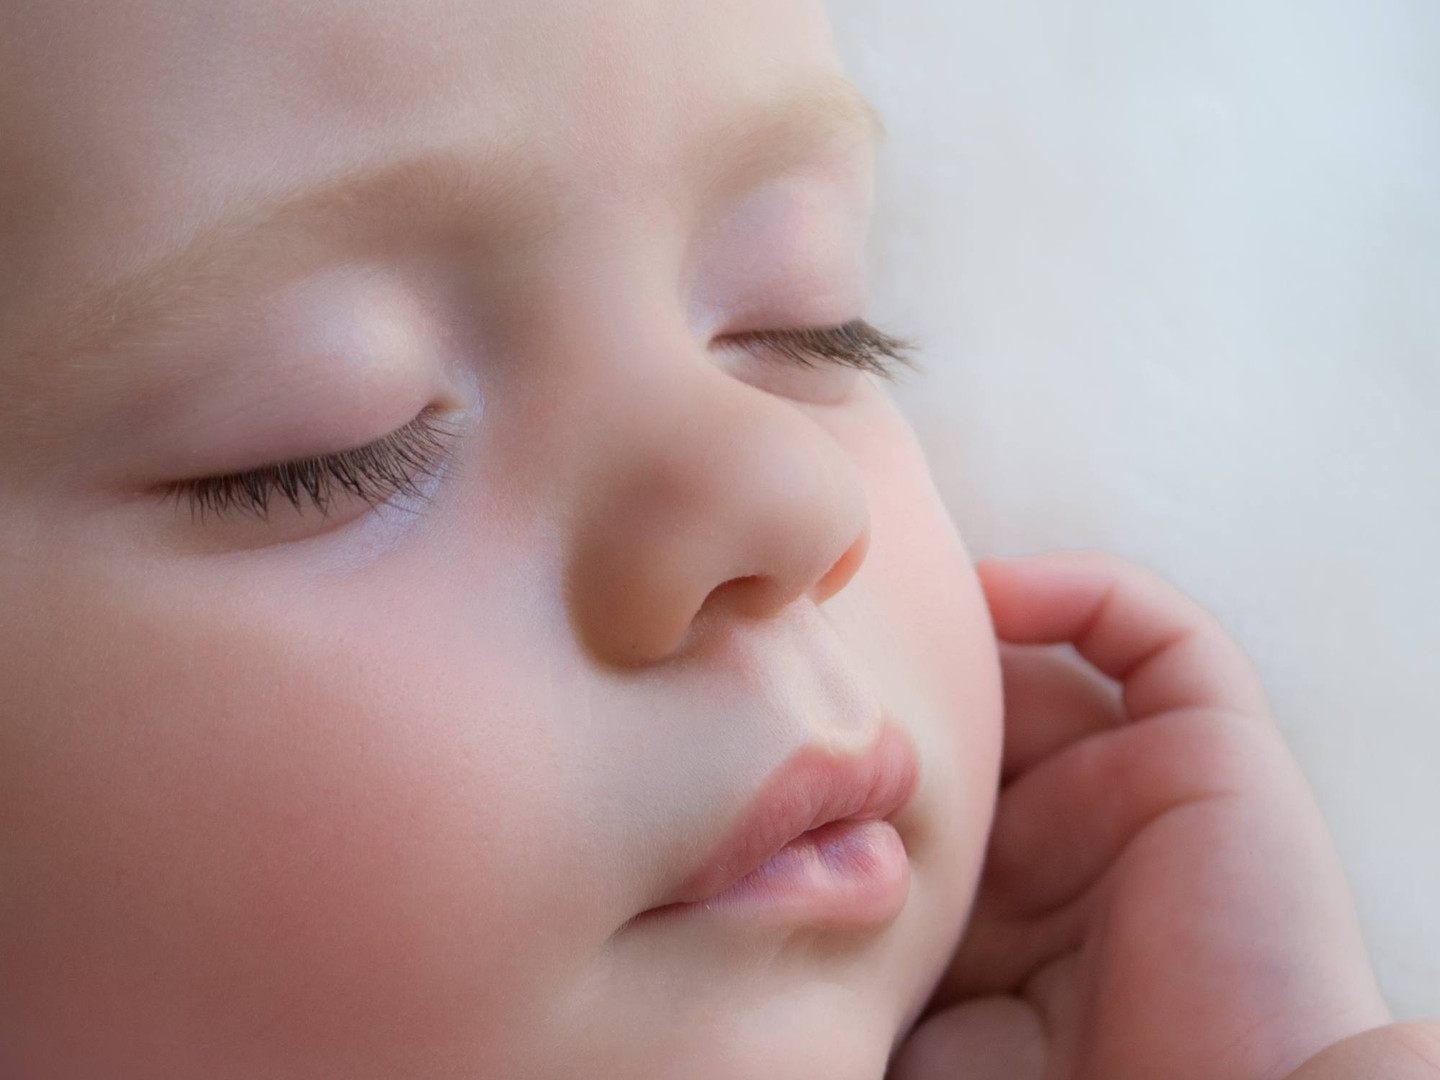 Close-up portrait photograph of a sleeping baby boy with gorgeous eyelashes and lips